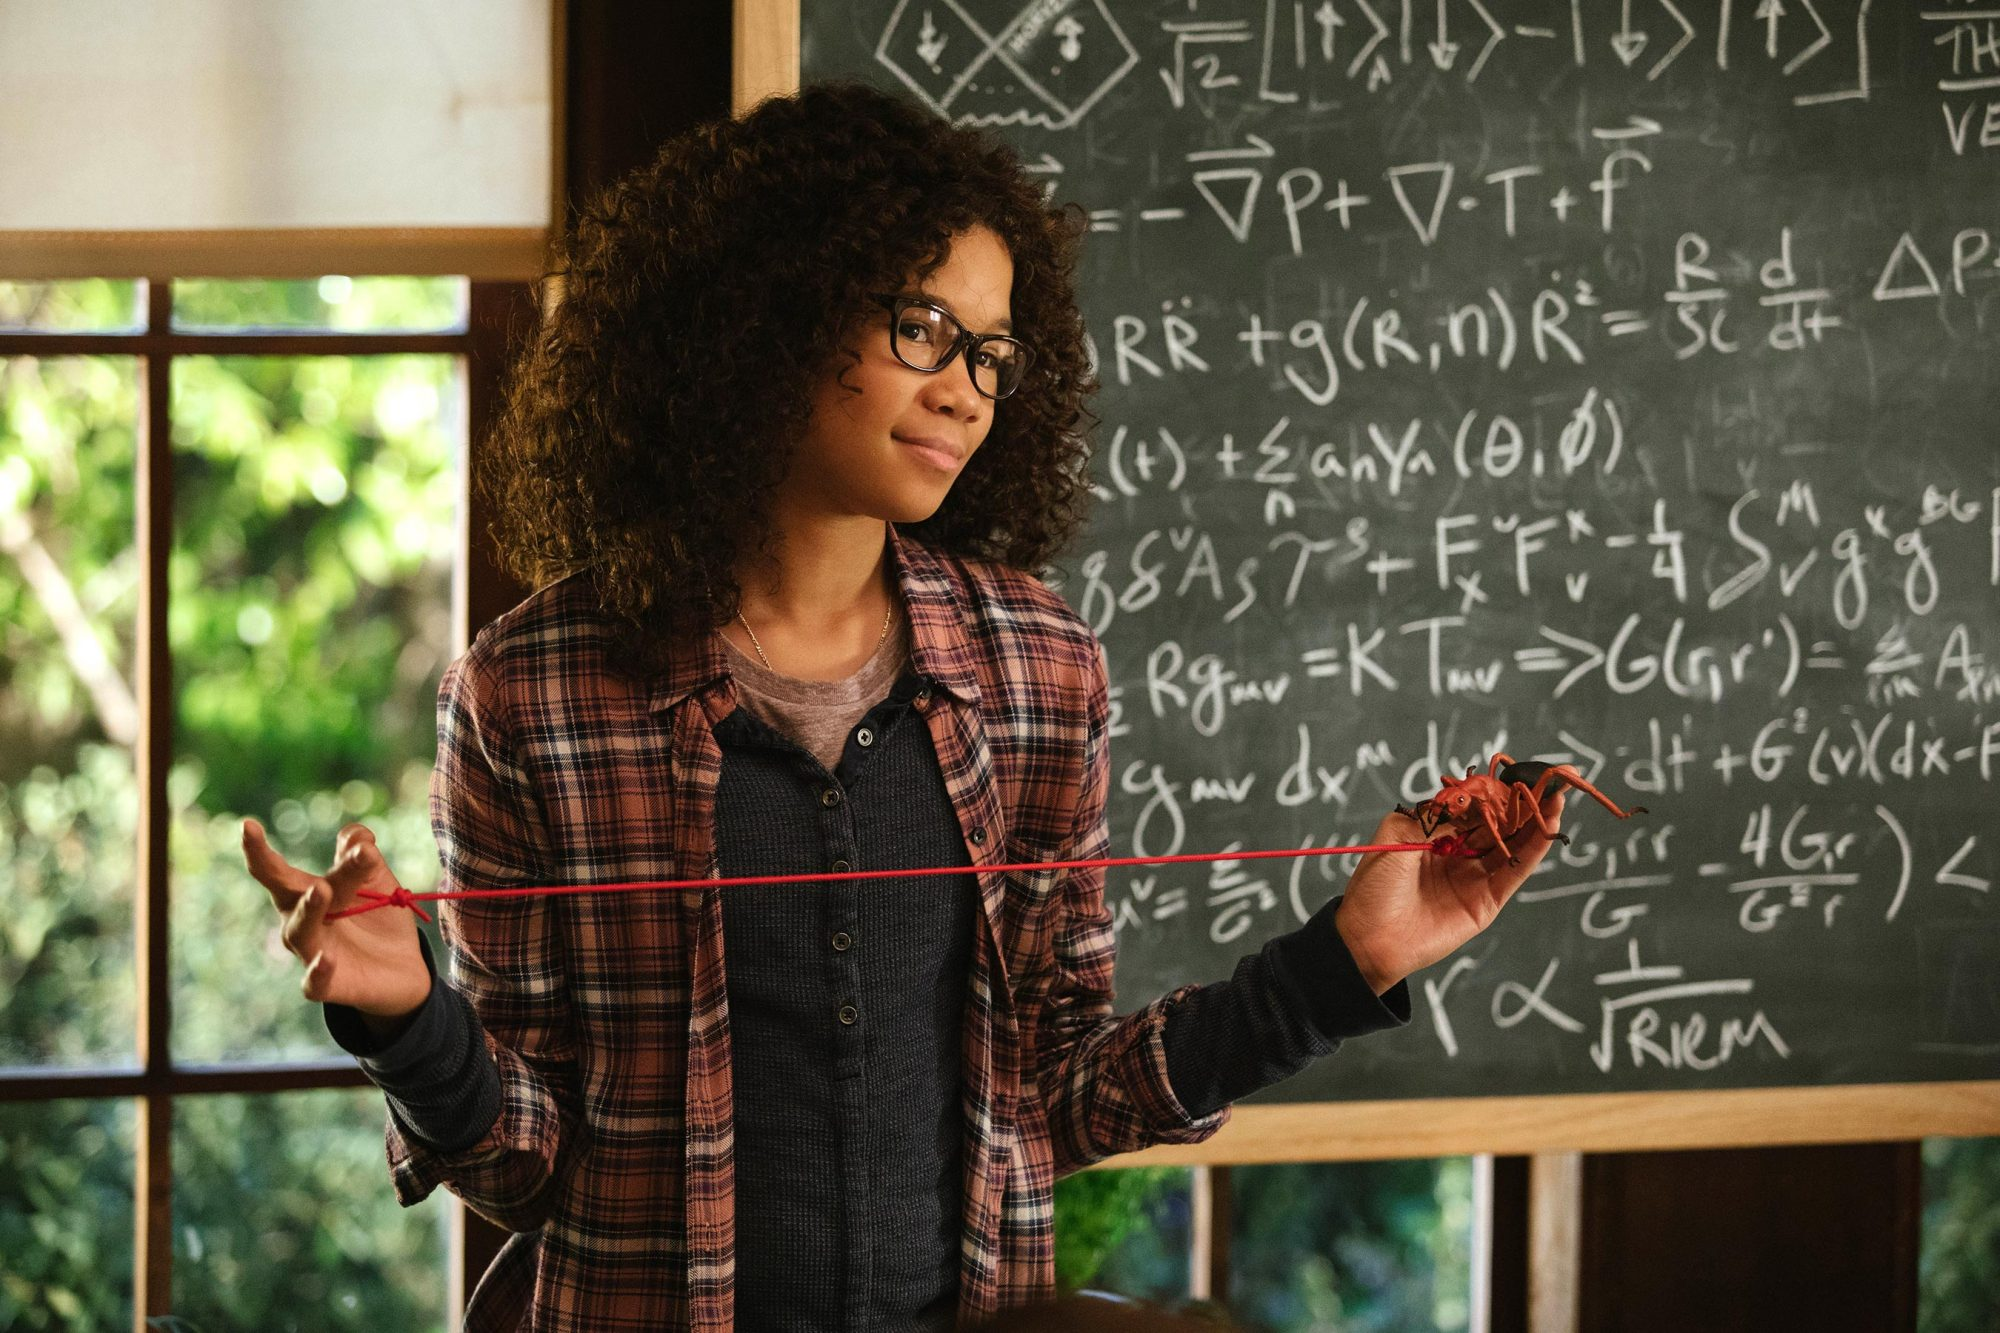 3. Meg Murry (A Wrinkle in Time)